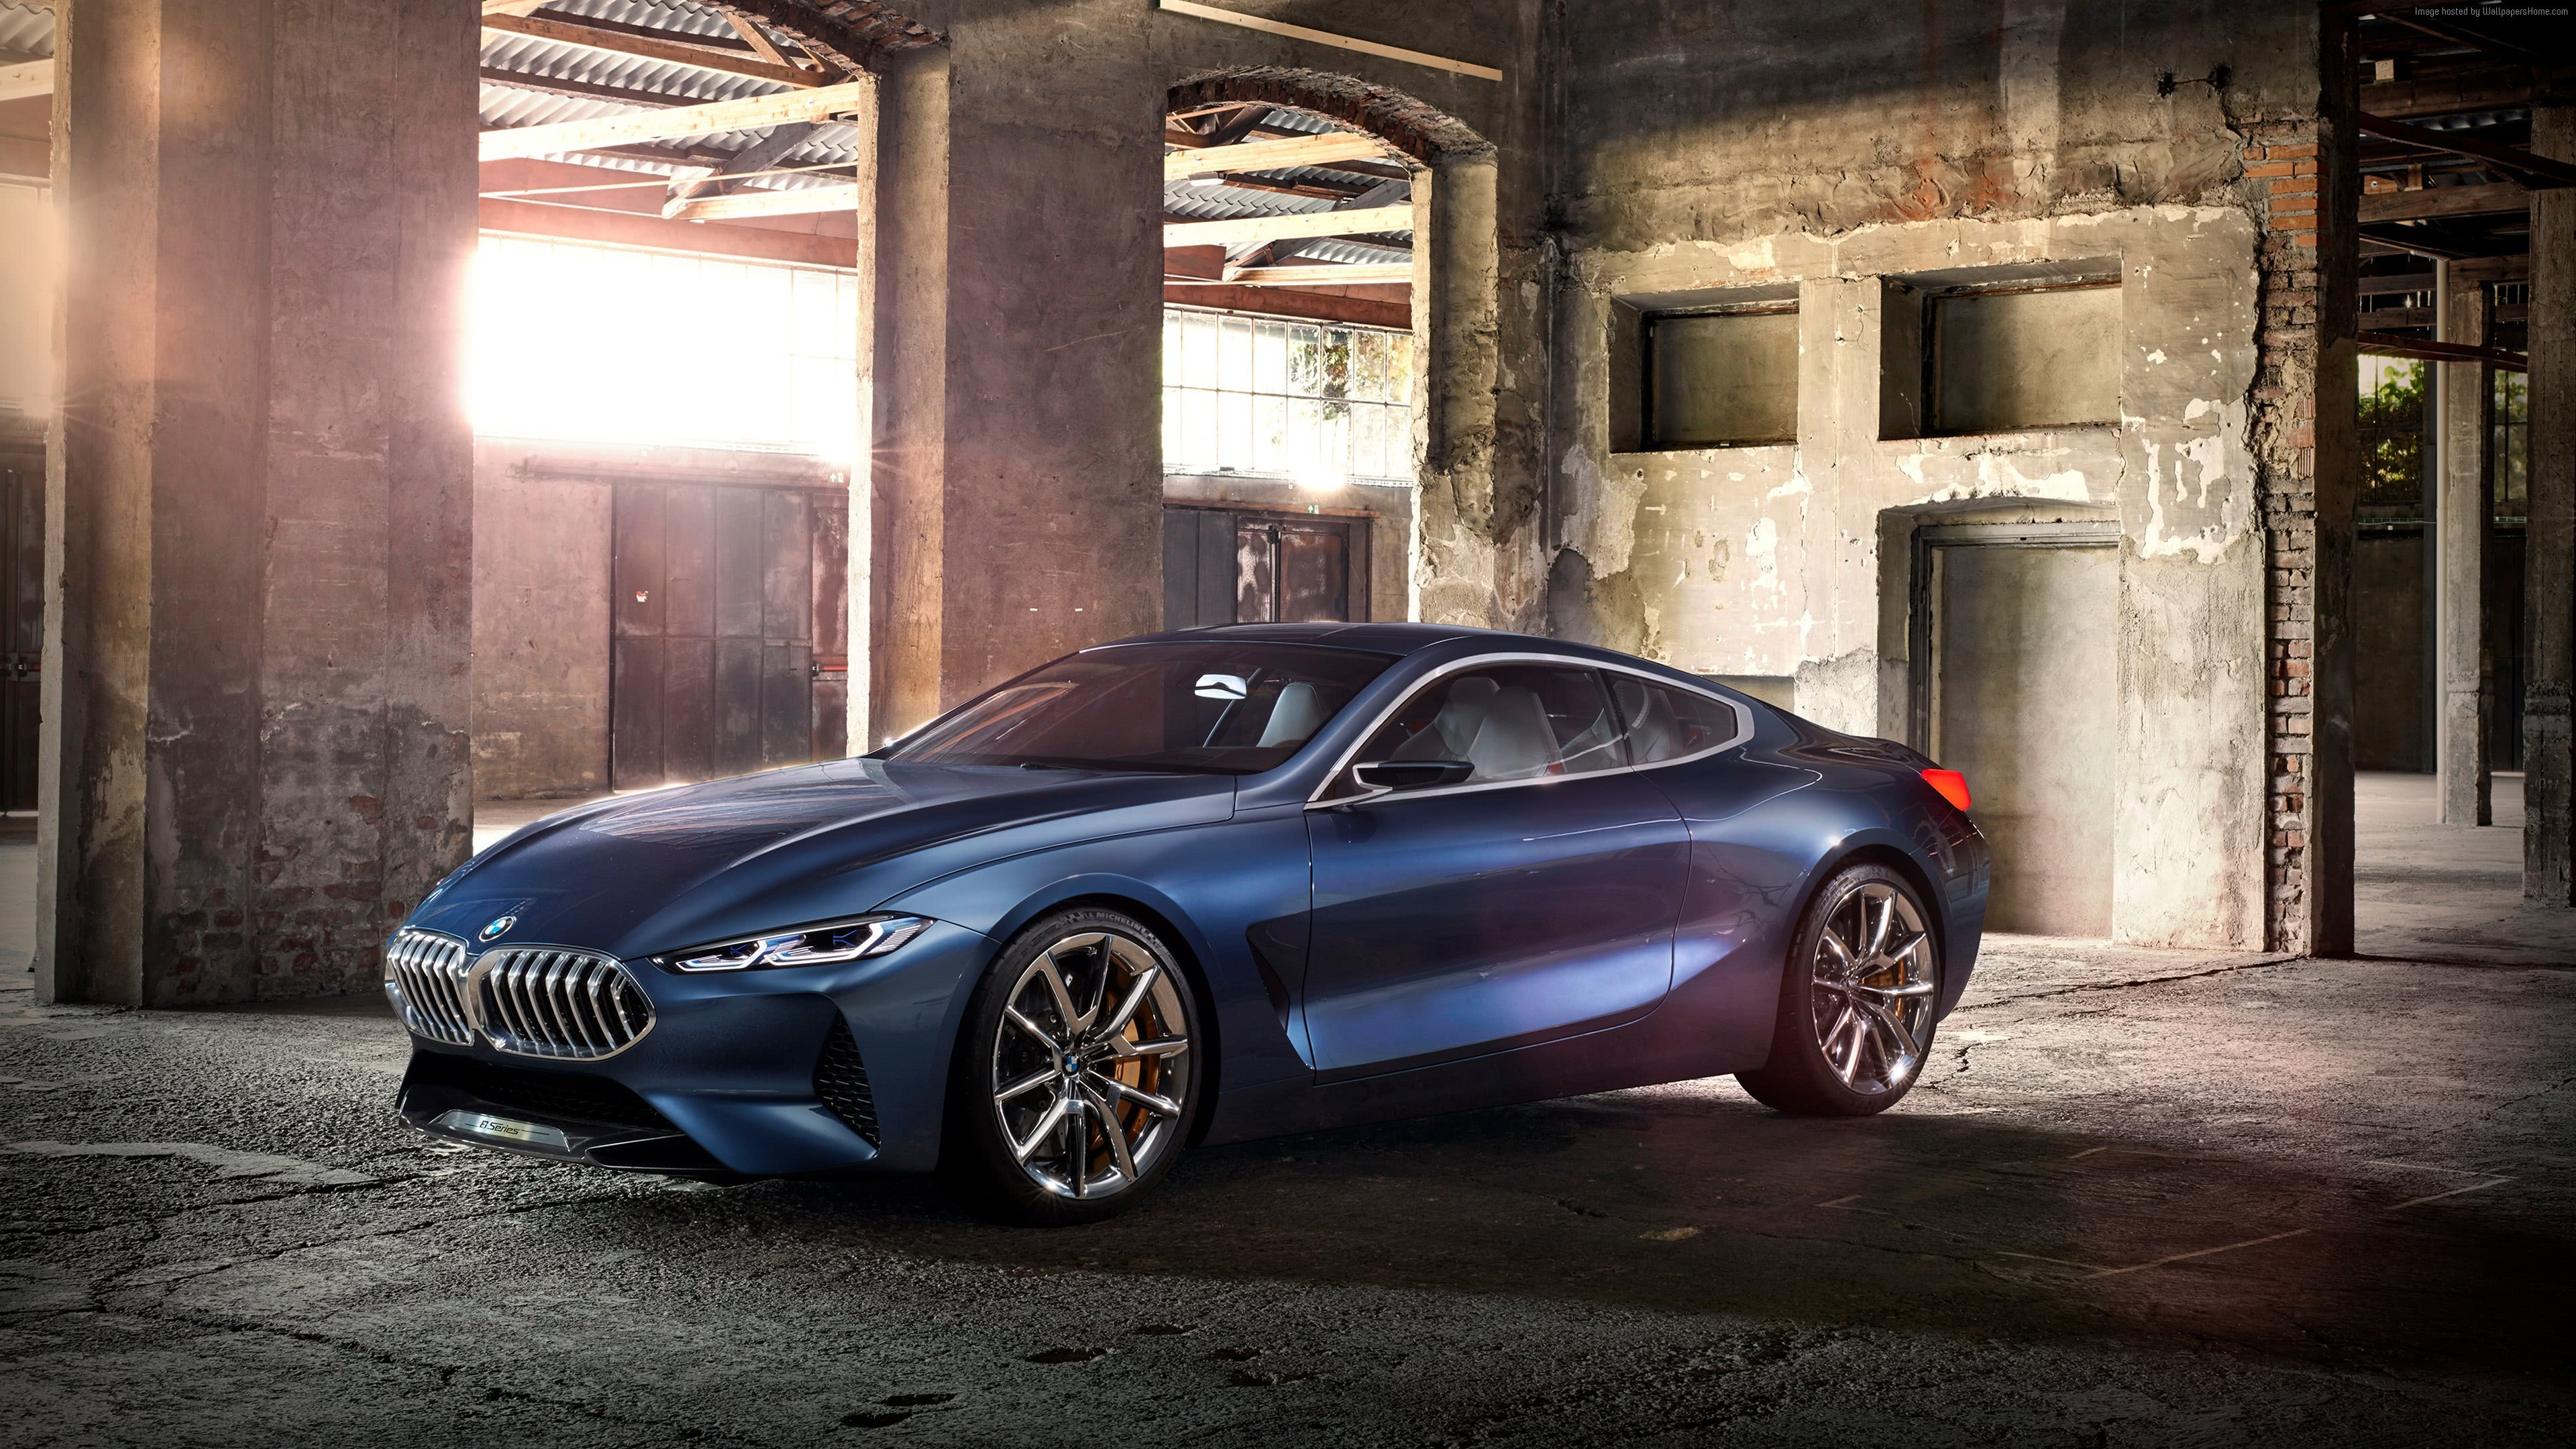 bmw 8 series gran coupe uhd 4k wallpaper